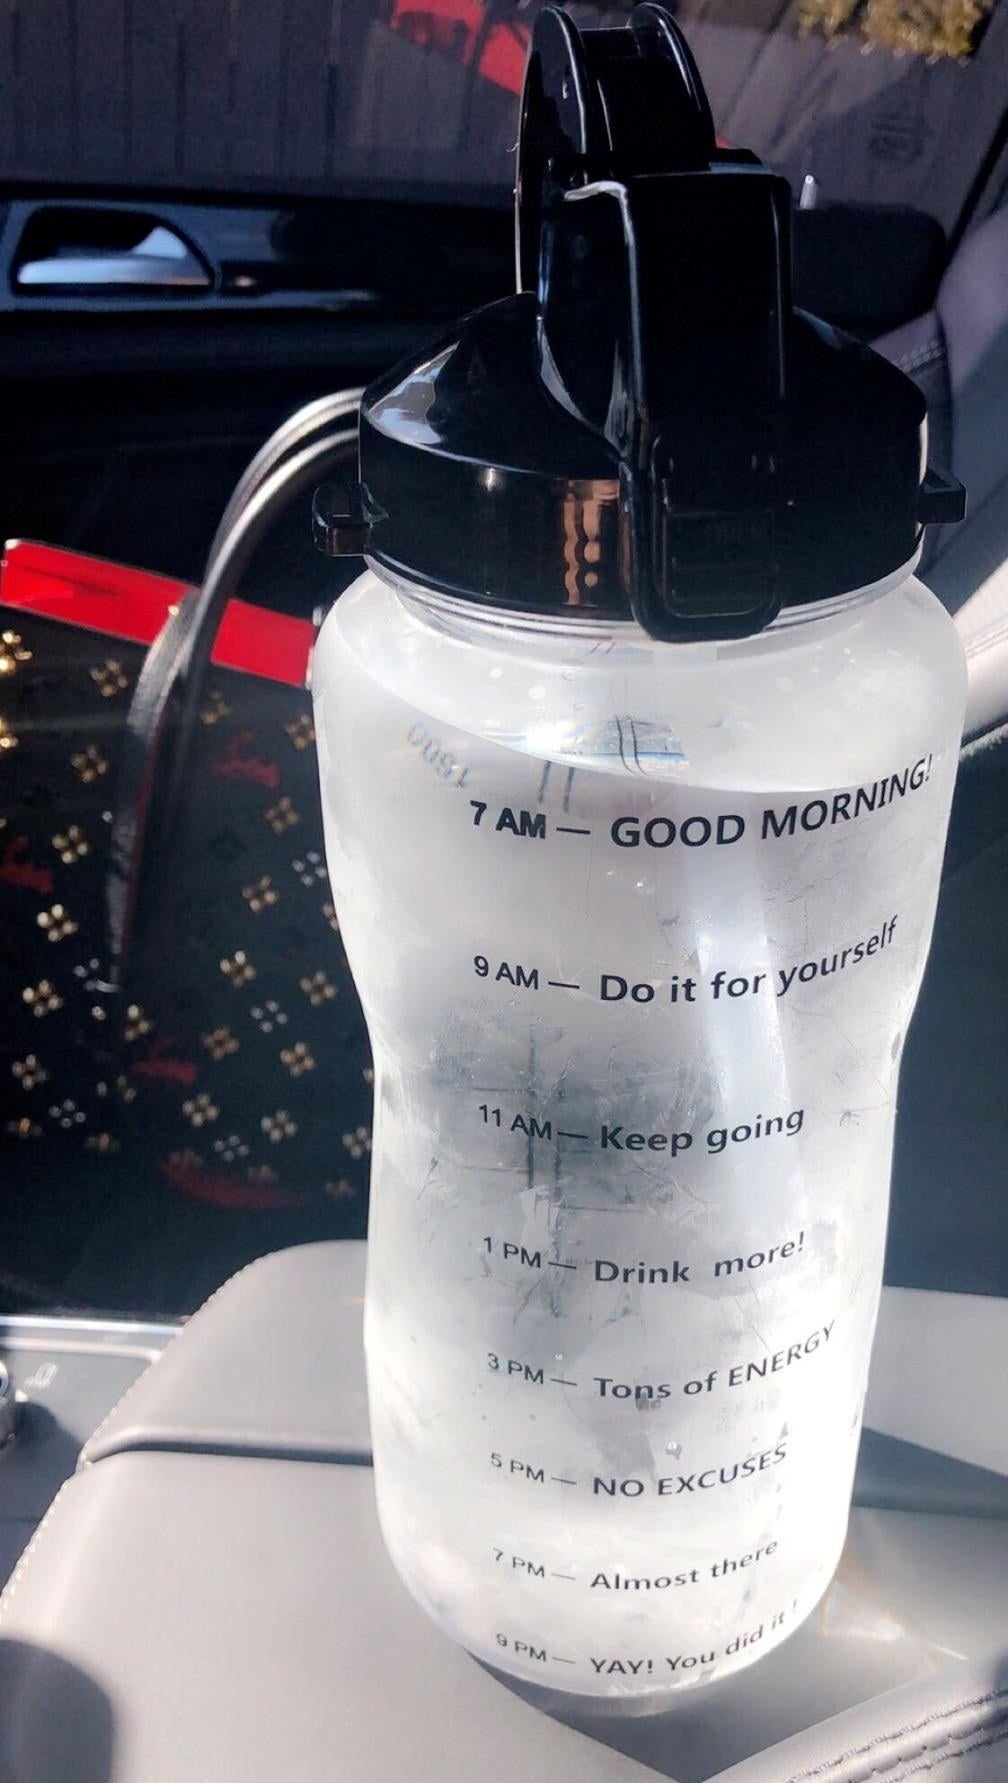 A reviewer's large clear water bottle with every two hours from 7 am to 9 pm marked with a different motivational phrase down the bottle